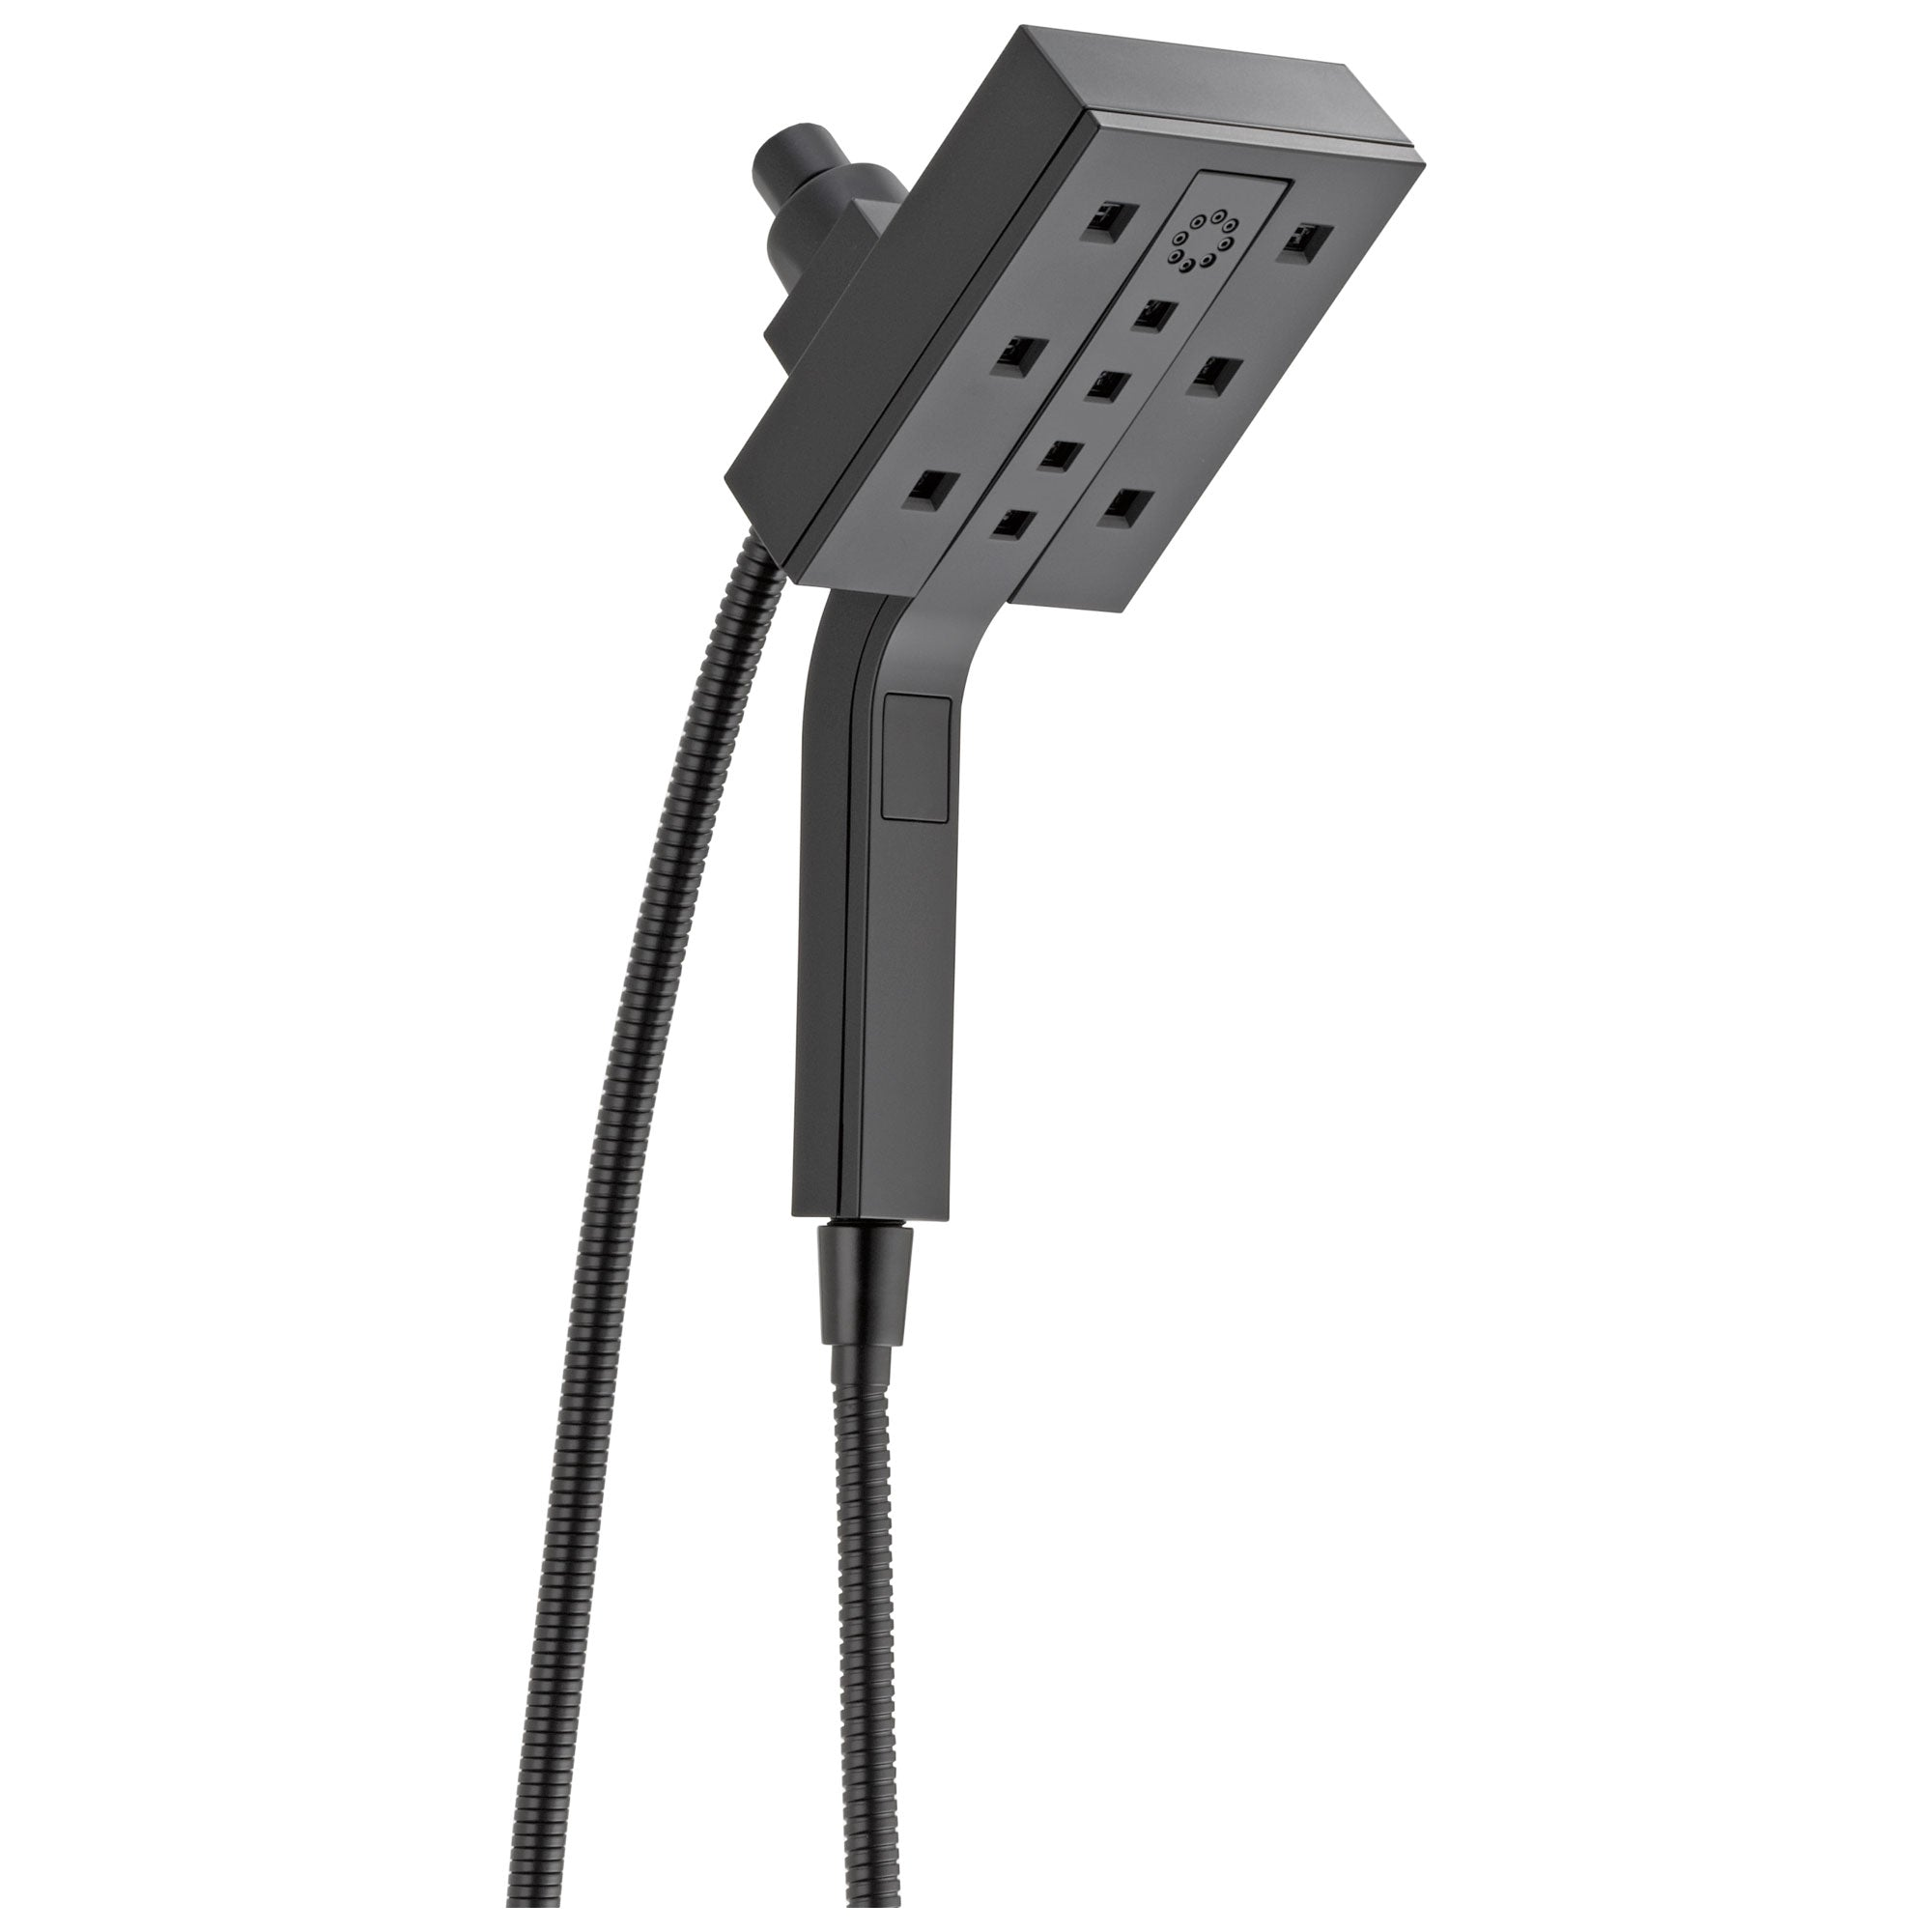 Delta Universal Showering Components Matte Black Finish Modern 4-Setting Shower Arm Mount Two-in-One Hand Shower and Showerhead Combination D58473BL